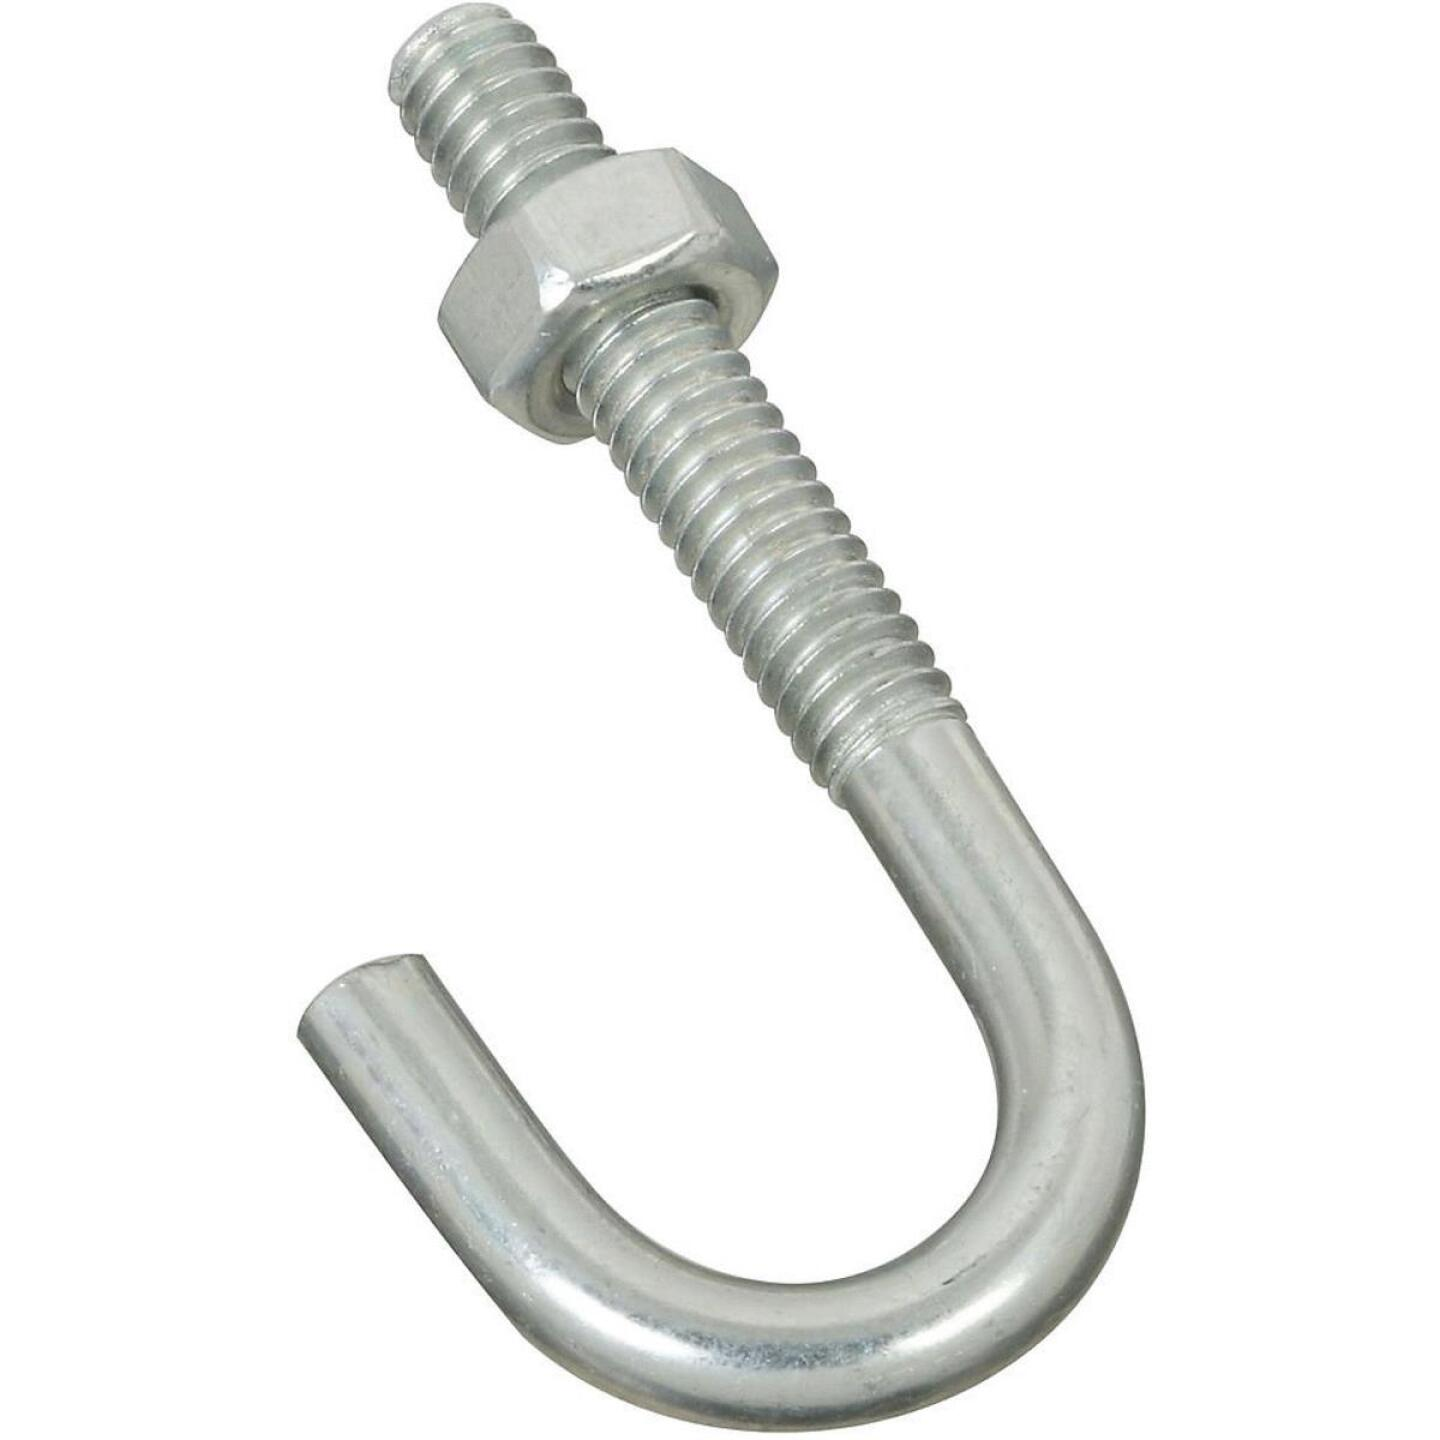 National 1/4 In. x 2-5/16 In. Zinc J Bolt Image 1